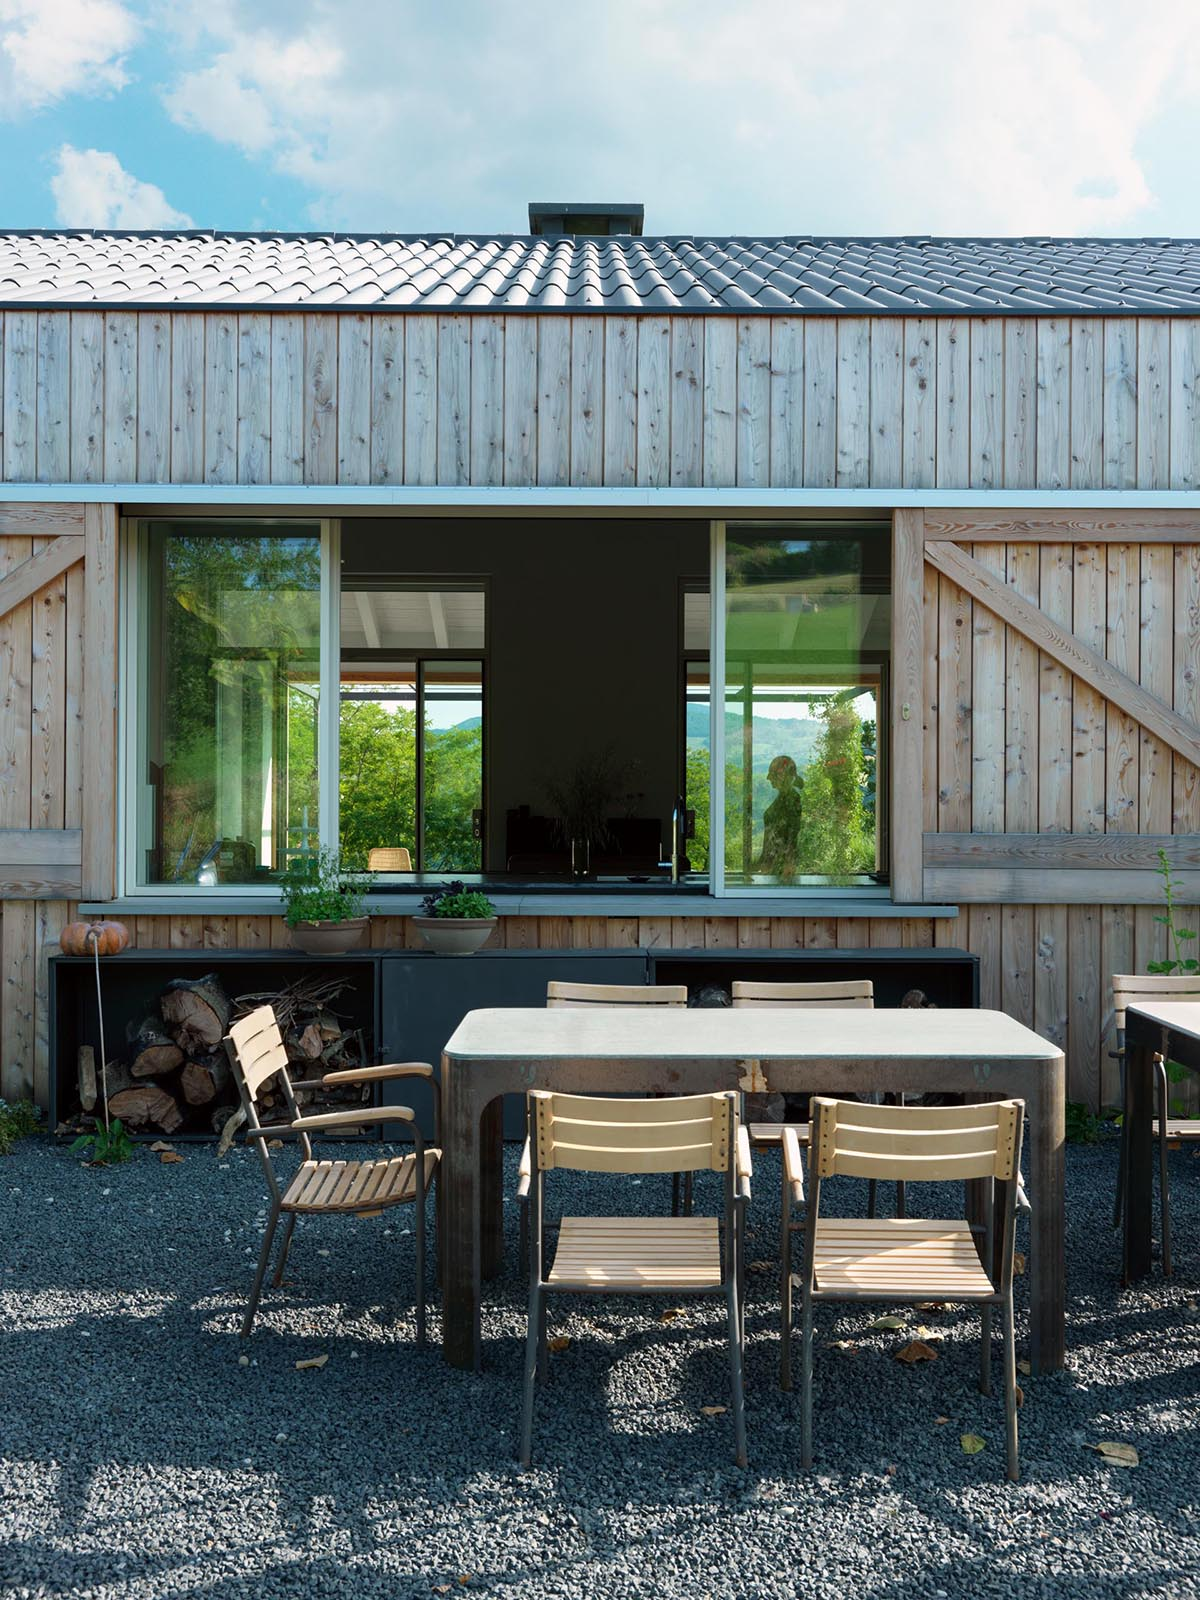 A modern country house with outdoor dining and sliding windows that act as a pass-through to the kitchen.